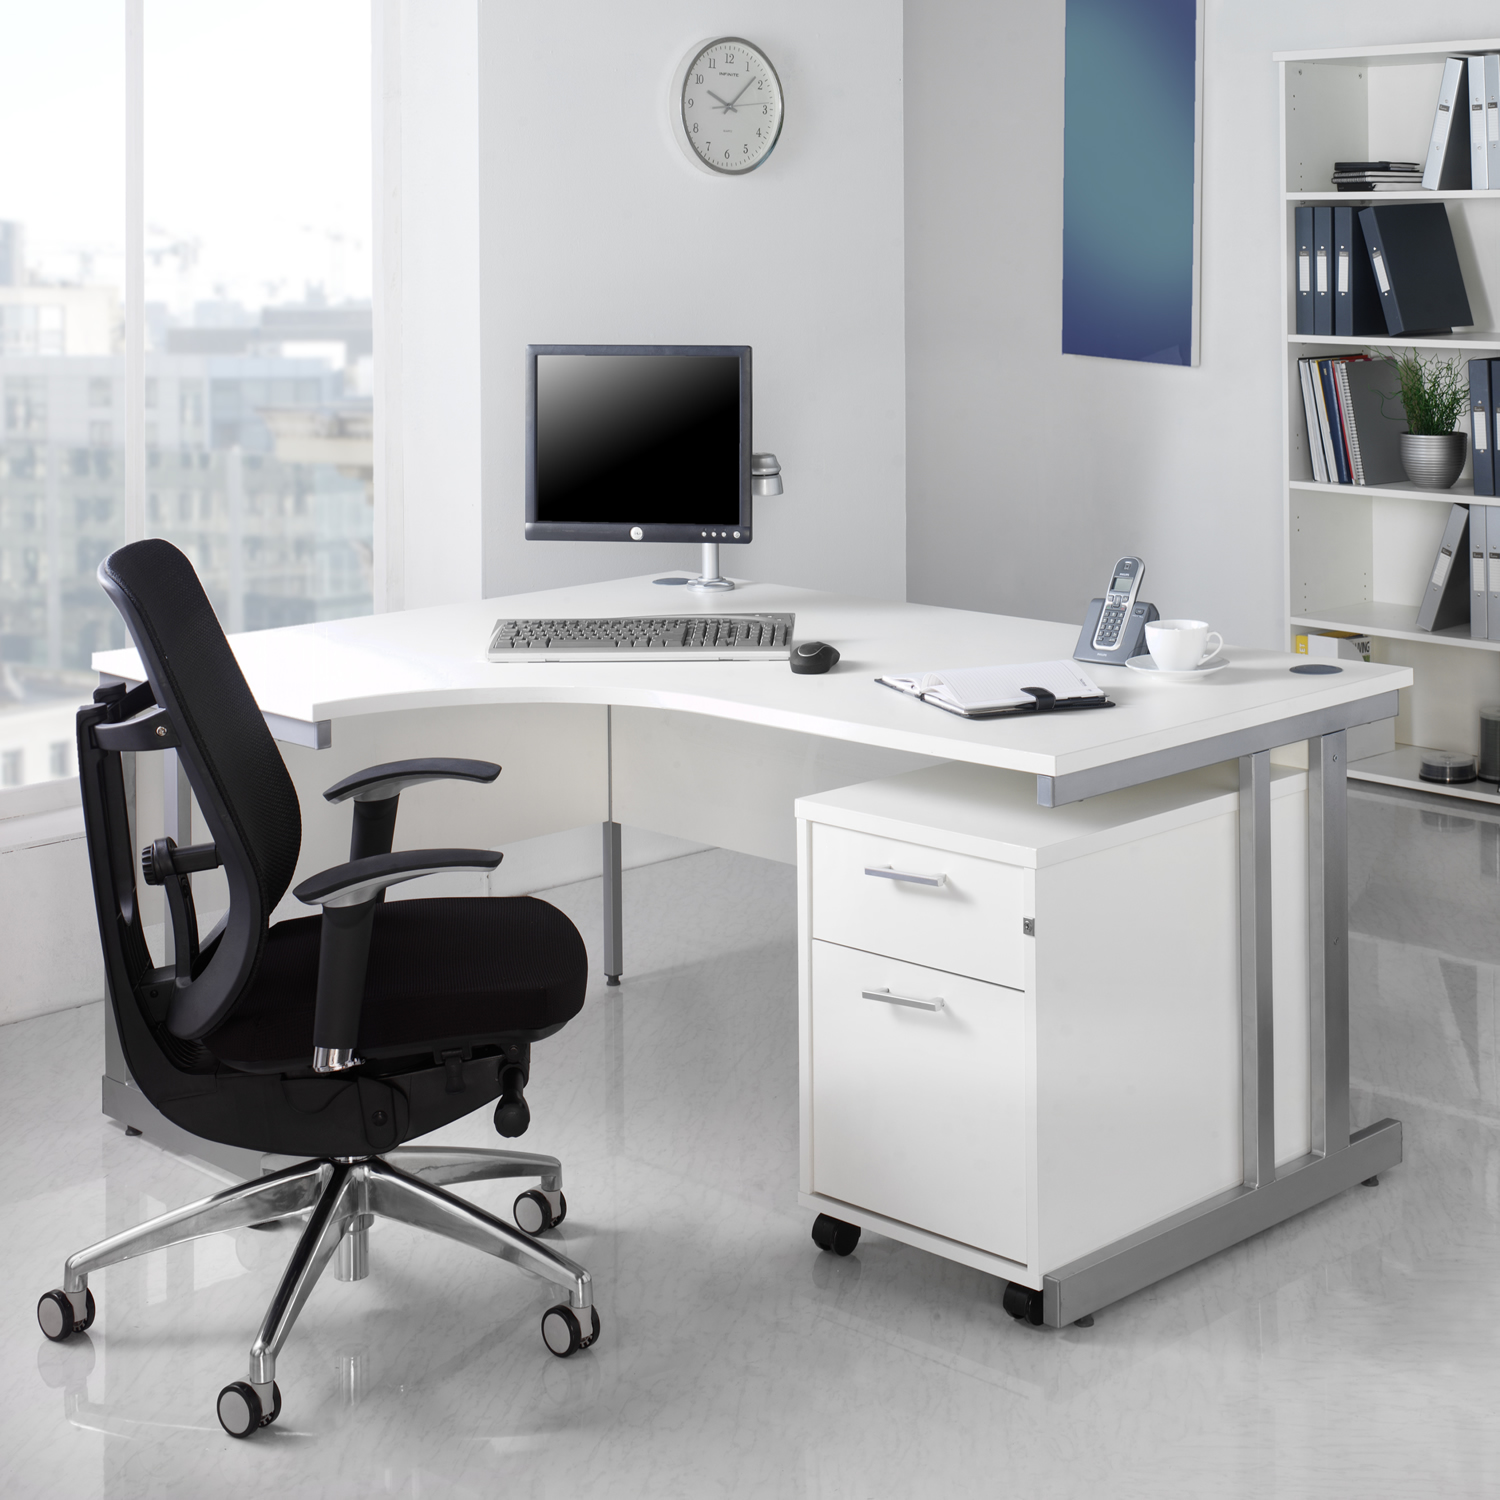 White office furniture for timeless style actual home - Office furnitur ...